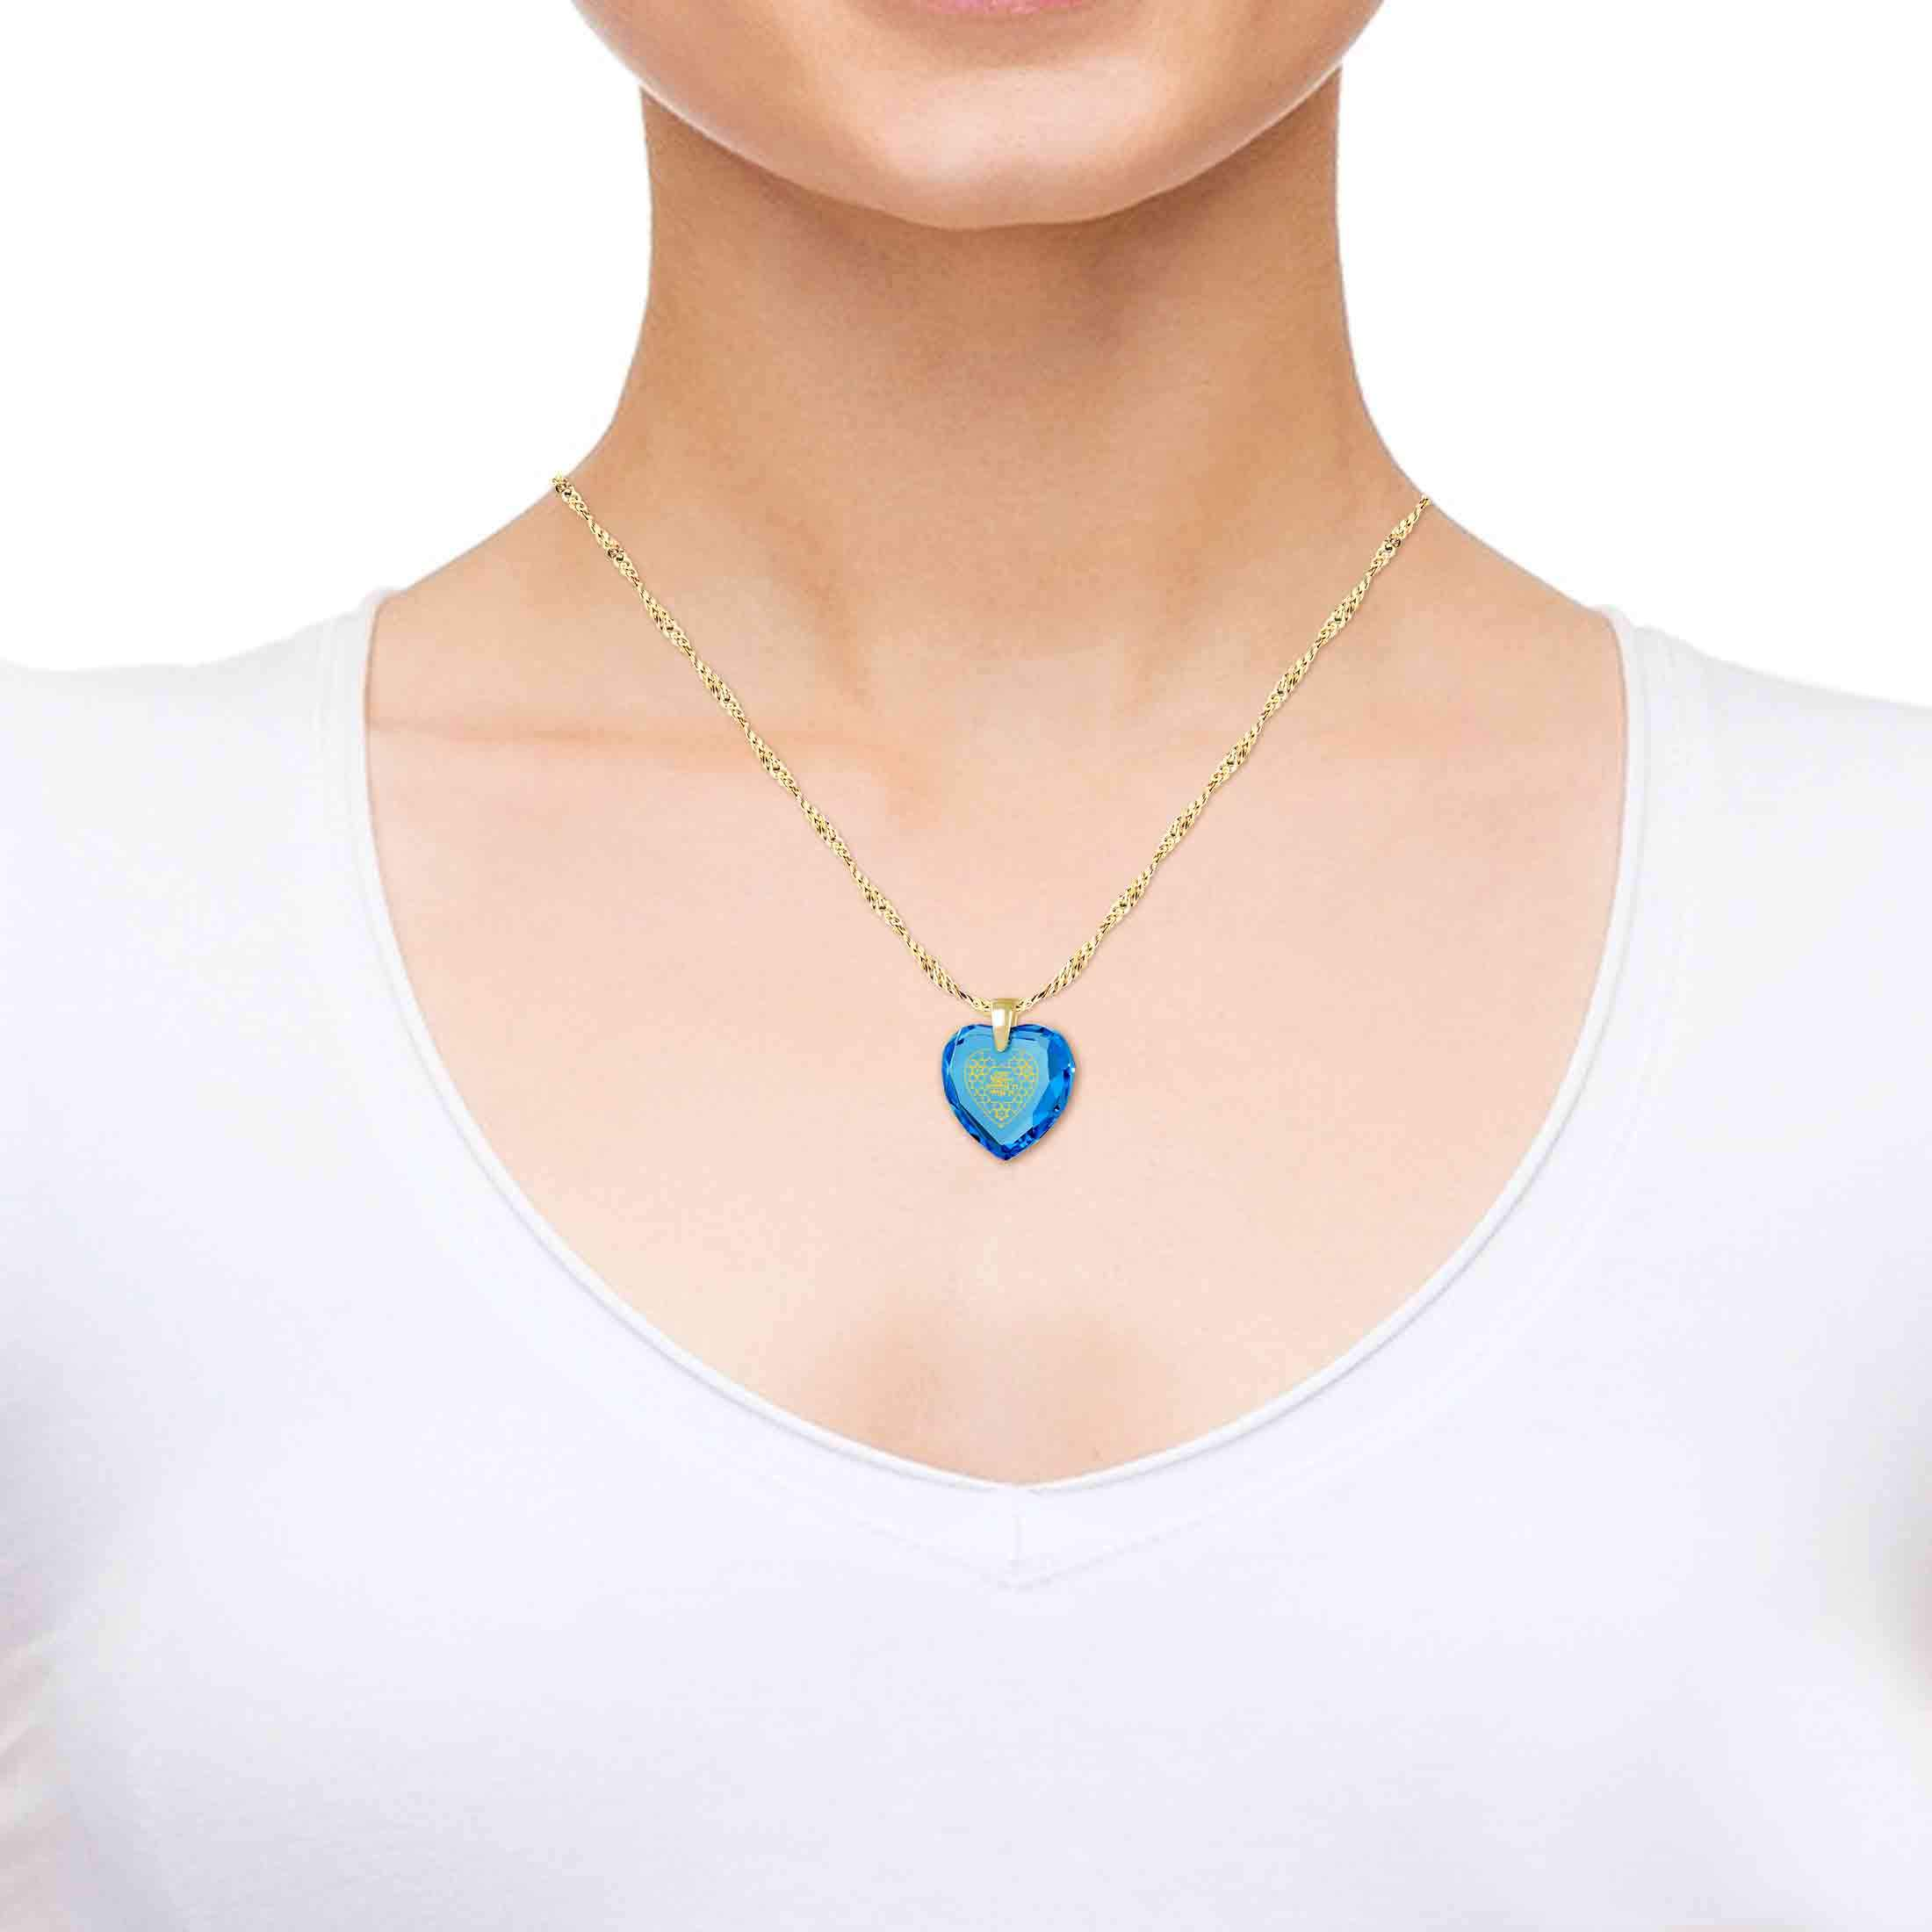 Heart Shaped Necklace, Nano Jewelry